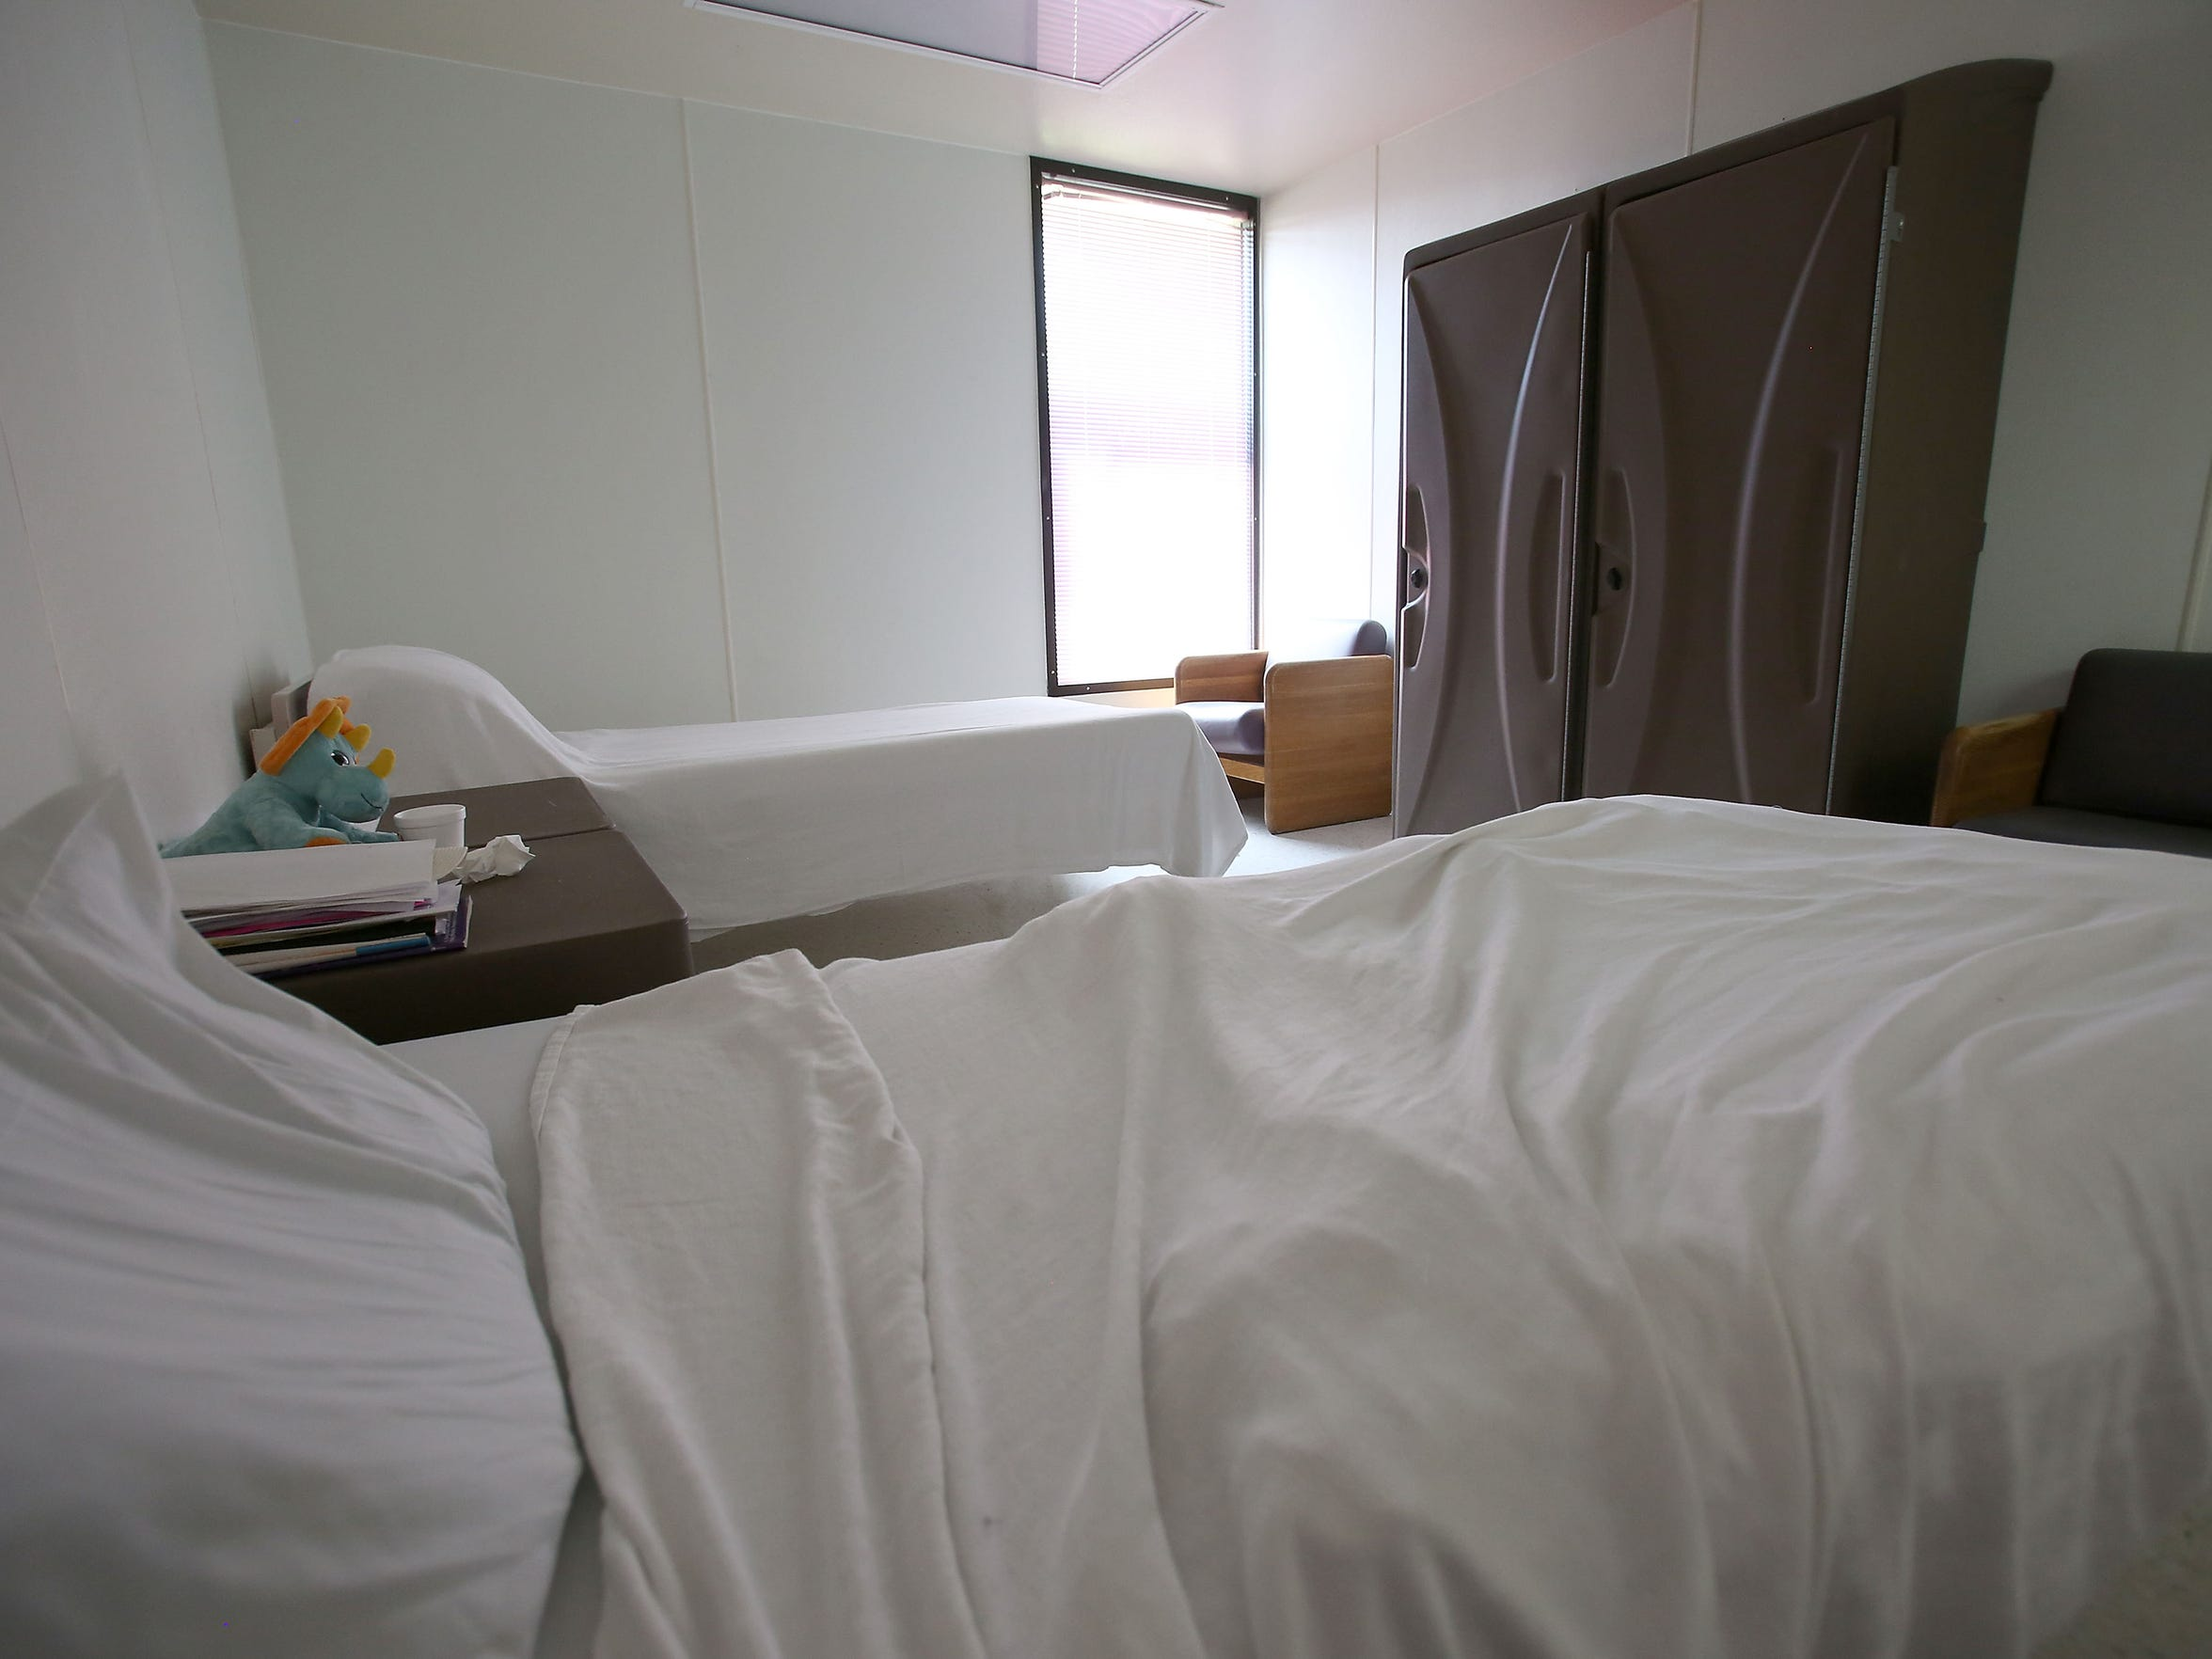 A room and two beds at the County of Riverside Mental Health building in Indio.